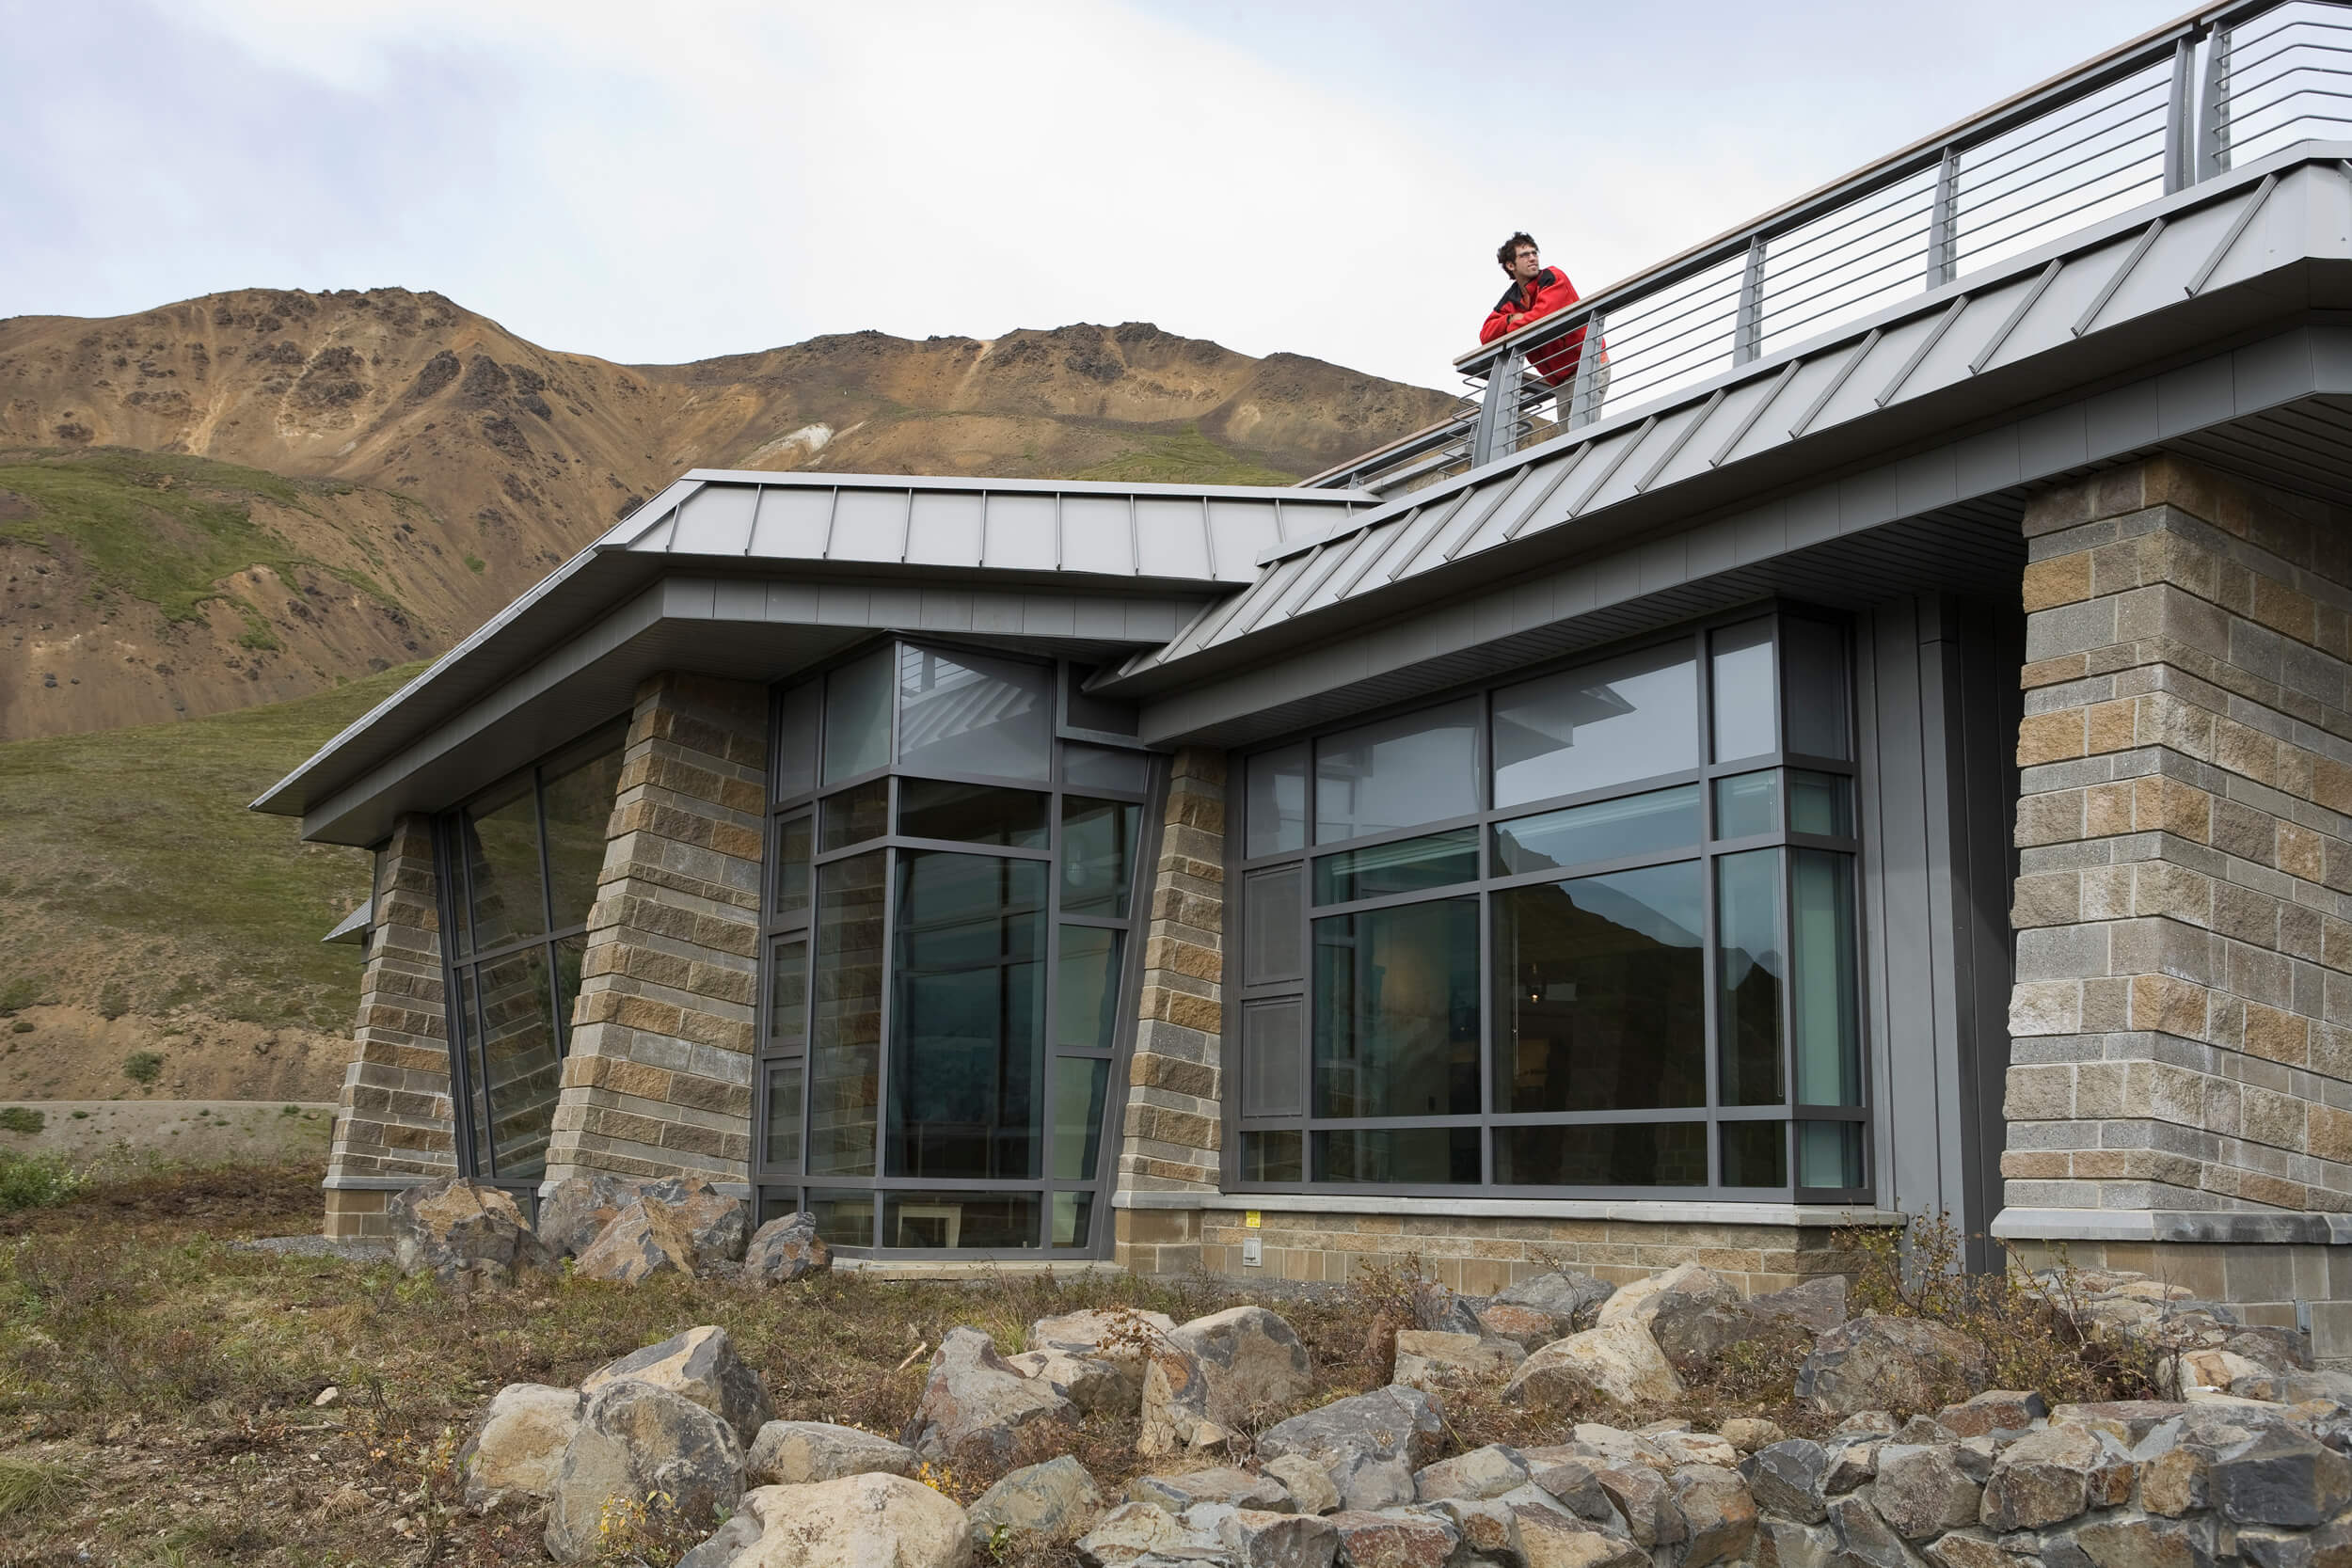 Expand Denali Eielson Visitor Center Viewing Deck